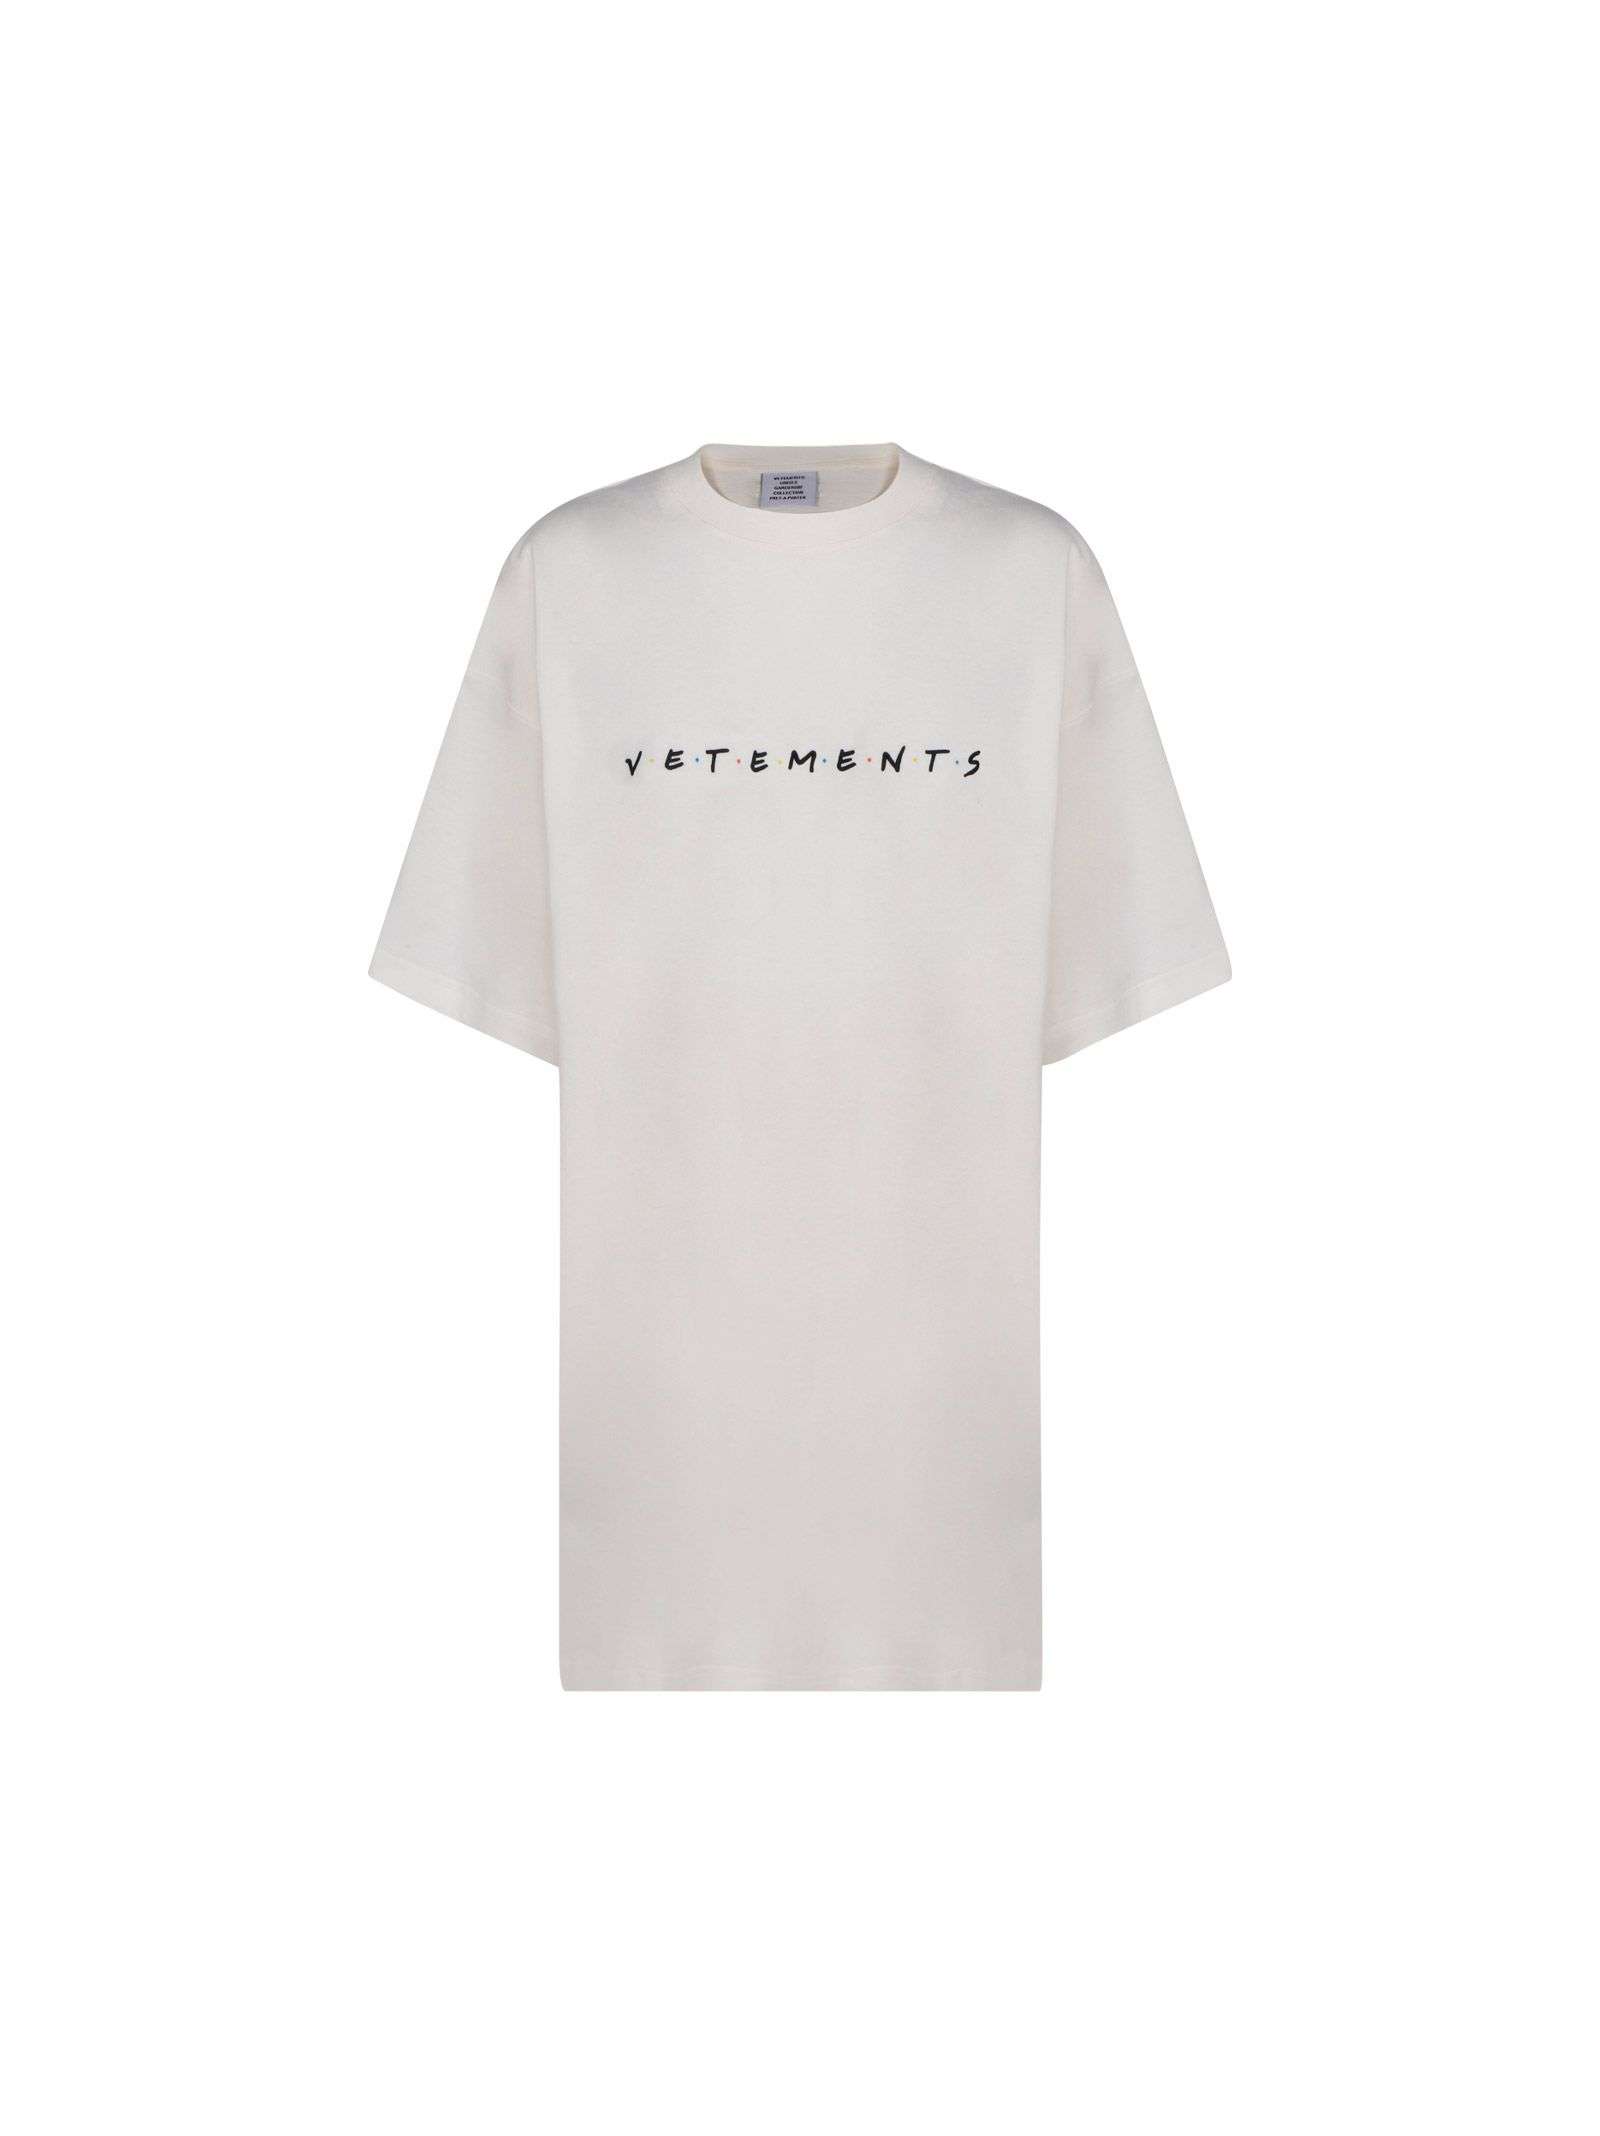 Vetements Cottons VETEMENTS WOMEN'S WHITE OTHER MATERIALS T-SHIRT